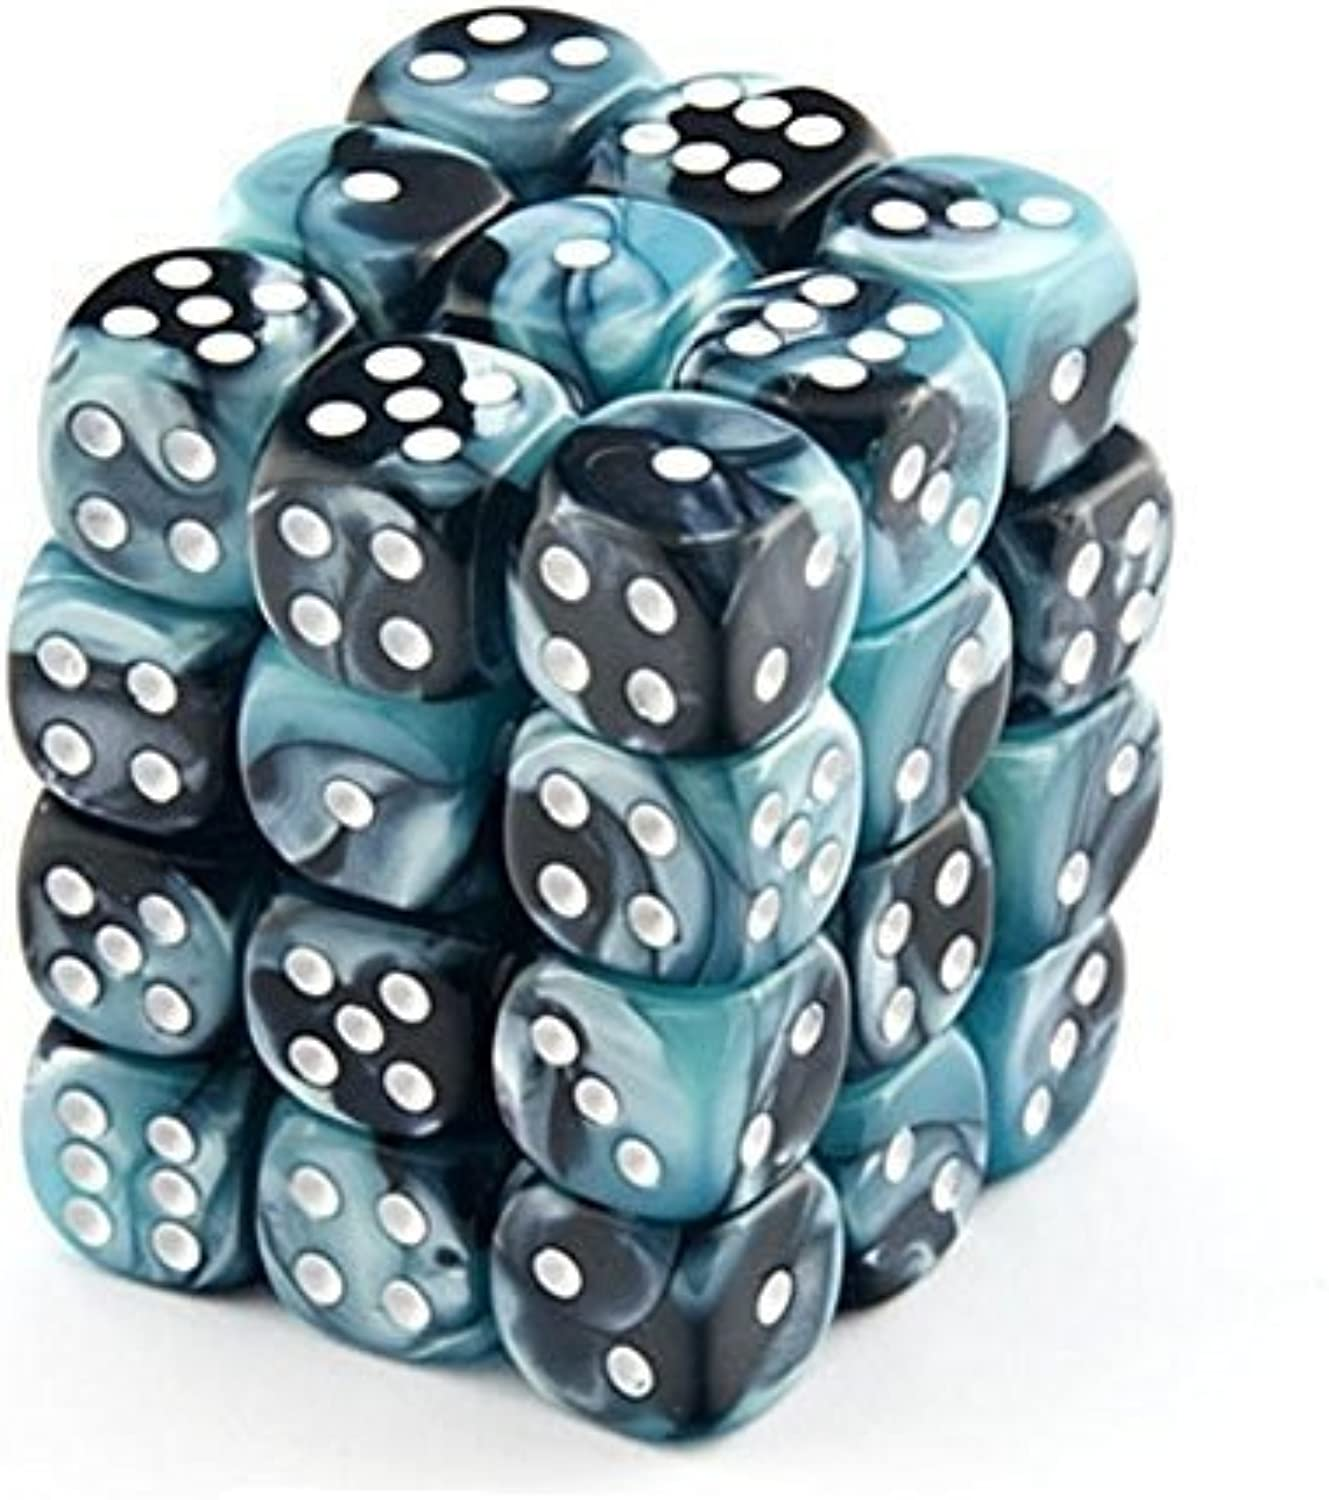 Chessex Dice d6 Sets  Gemini schwarz & Shell with Weiß - 12mm Six Sided Die (36) Block of Dice by Chessex